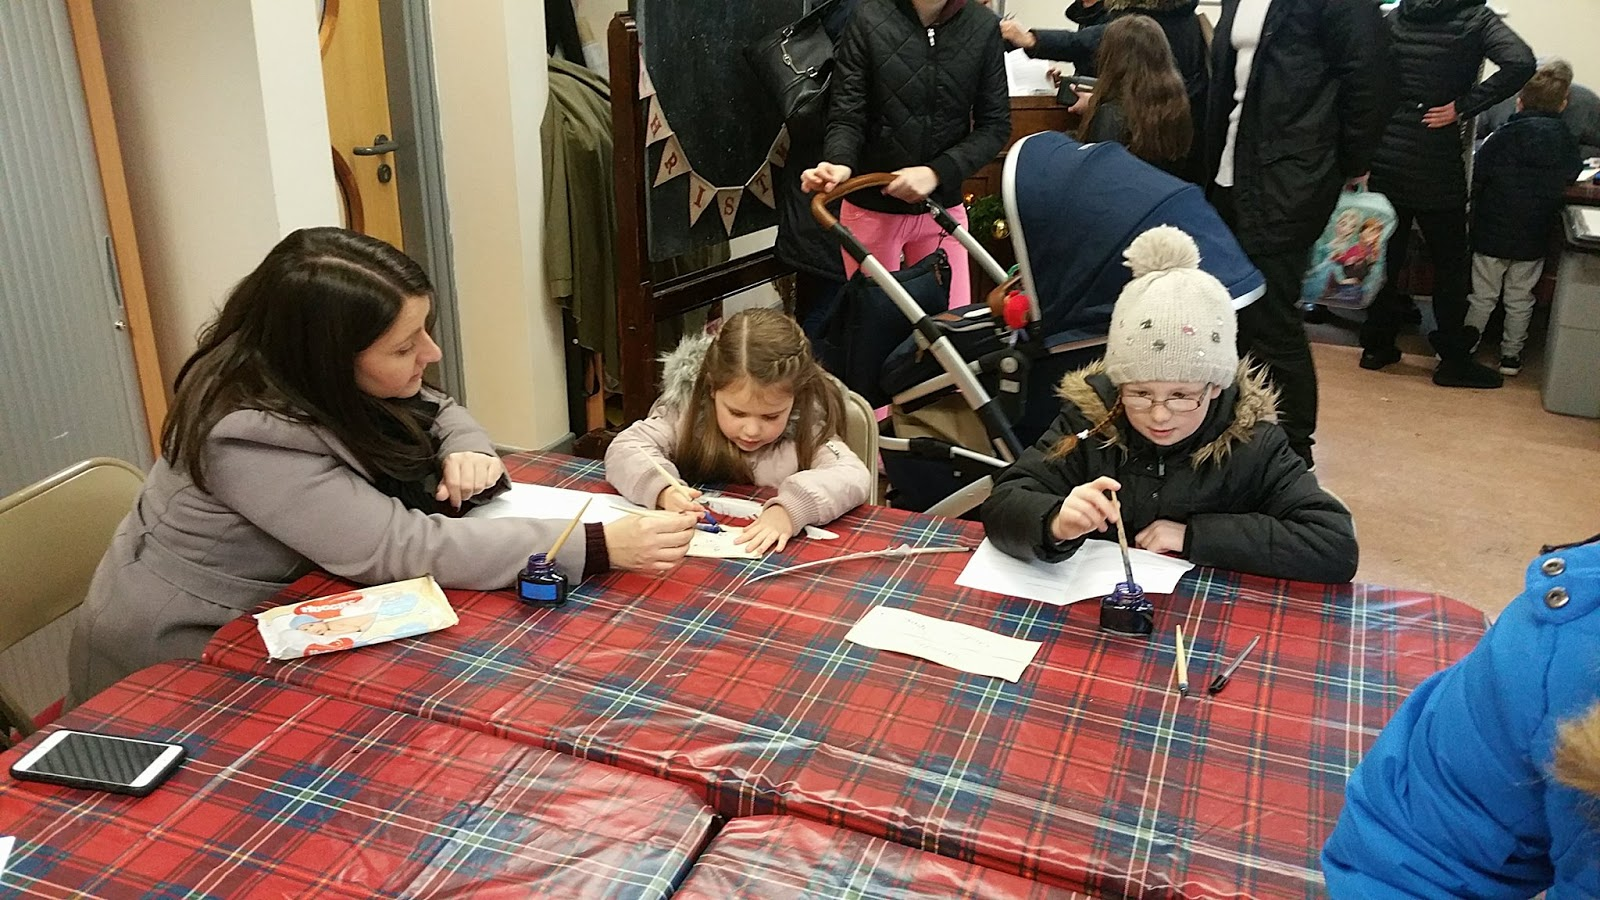 Preston Park Museum & Grounds | Christmas Bazaar and visiting Santa 2016 - writing letters to Santa